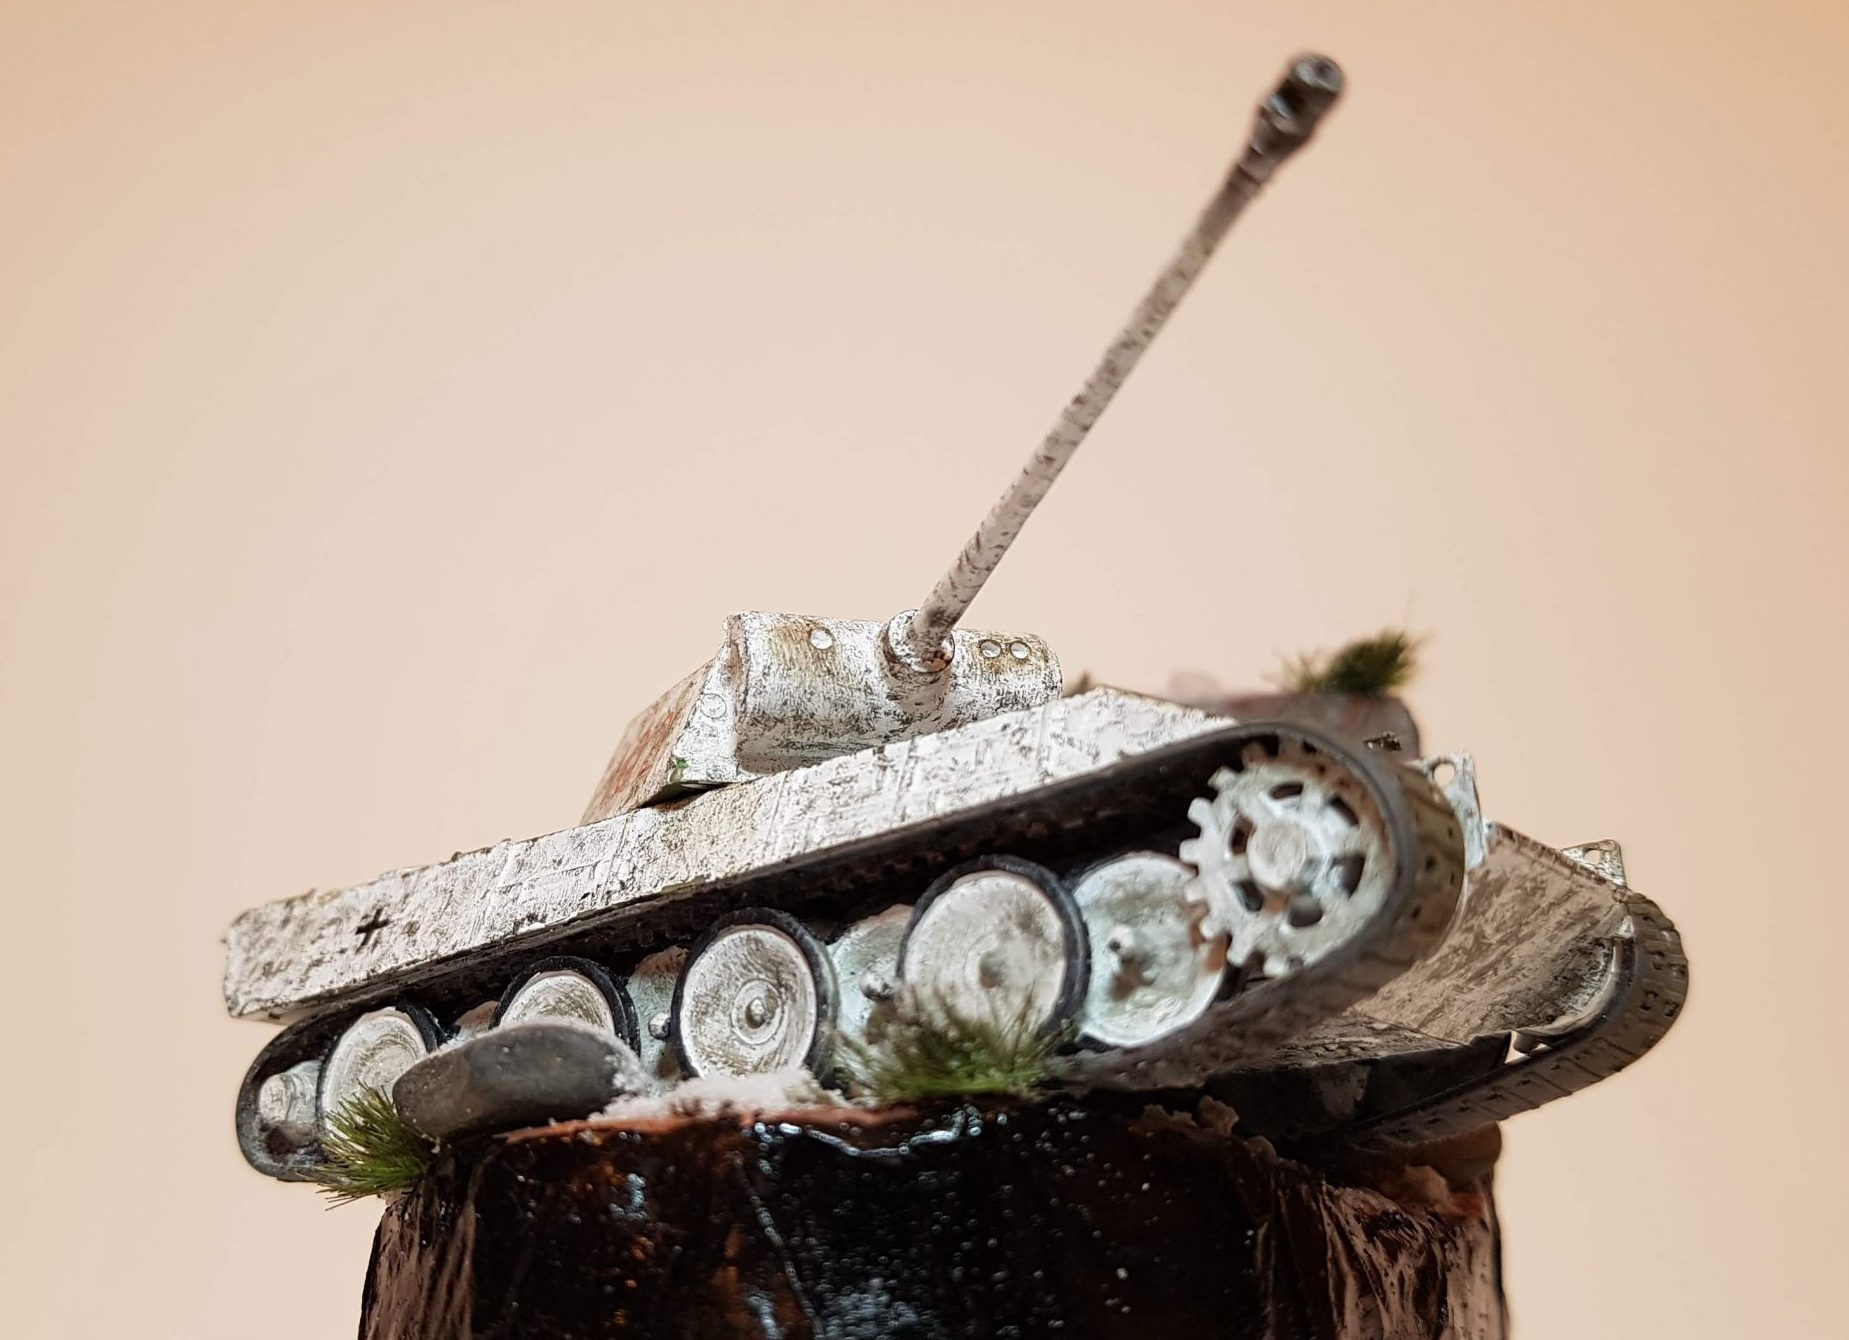 Model of Winter Panther Tank (WW2) - Angle View (Lower) - 1/76 Scale - Built By Wright Built - Airfix Models